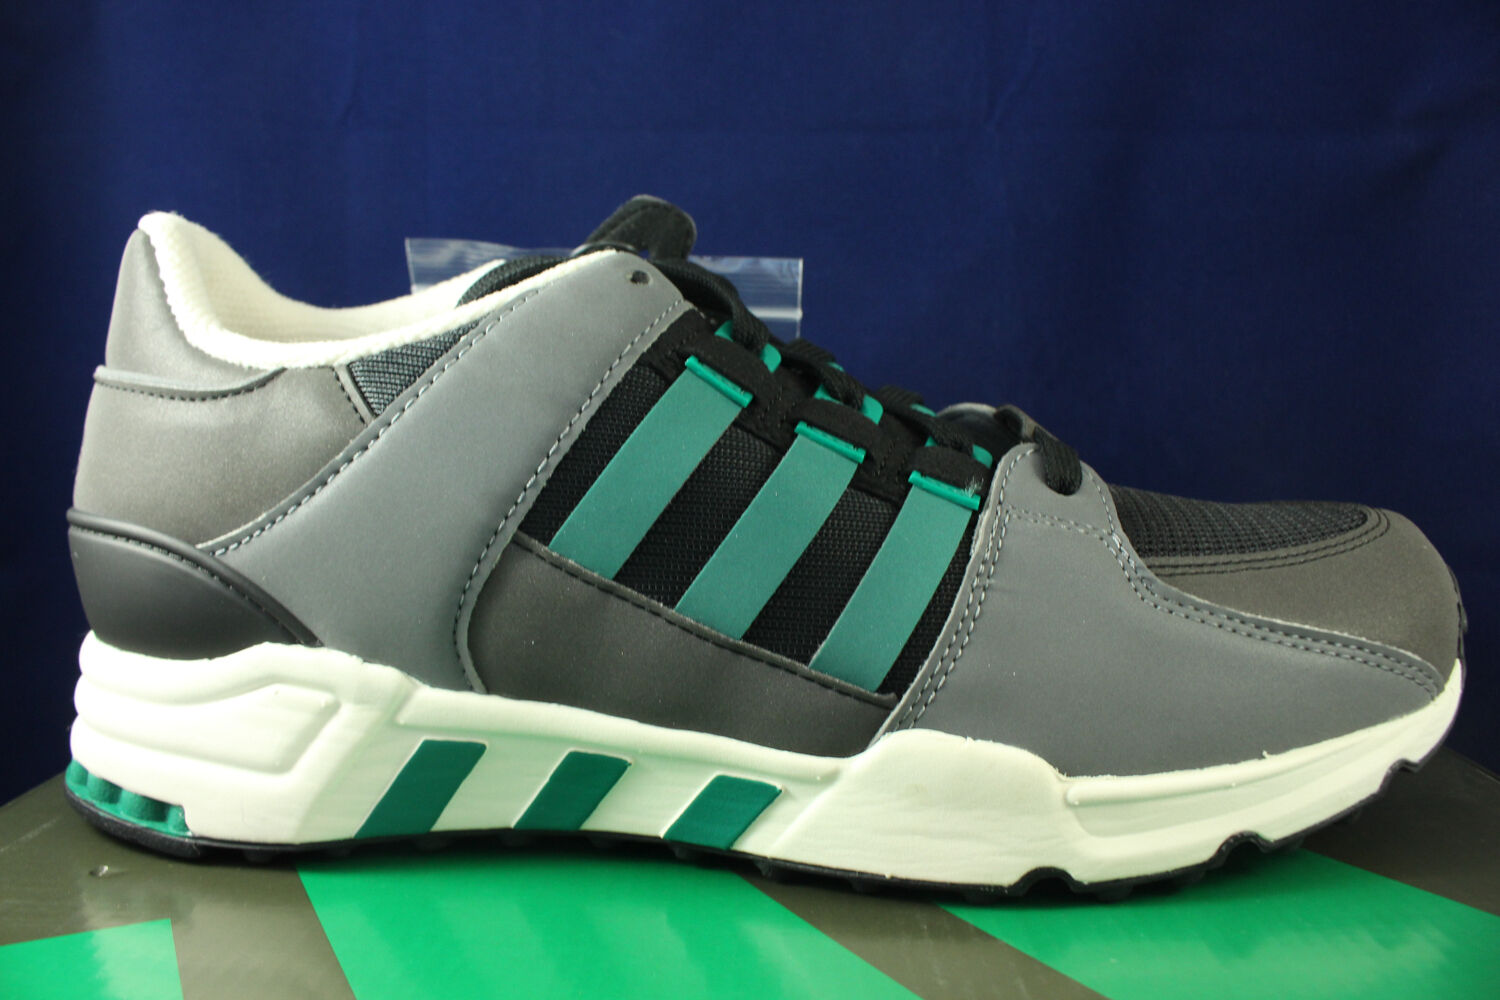 ADIDAS EQT RUNNING BLACK SUB GREEN CHALK WHITE SZ EQUIPMENT S32144 SZ WHITE 11 a07194